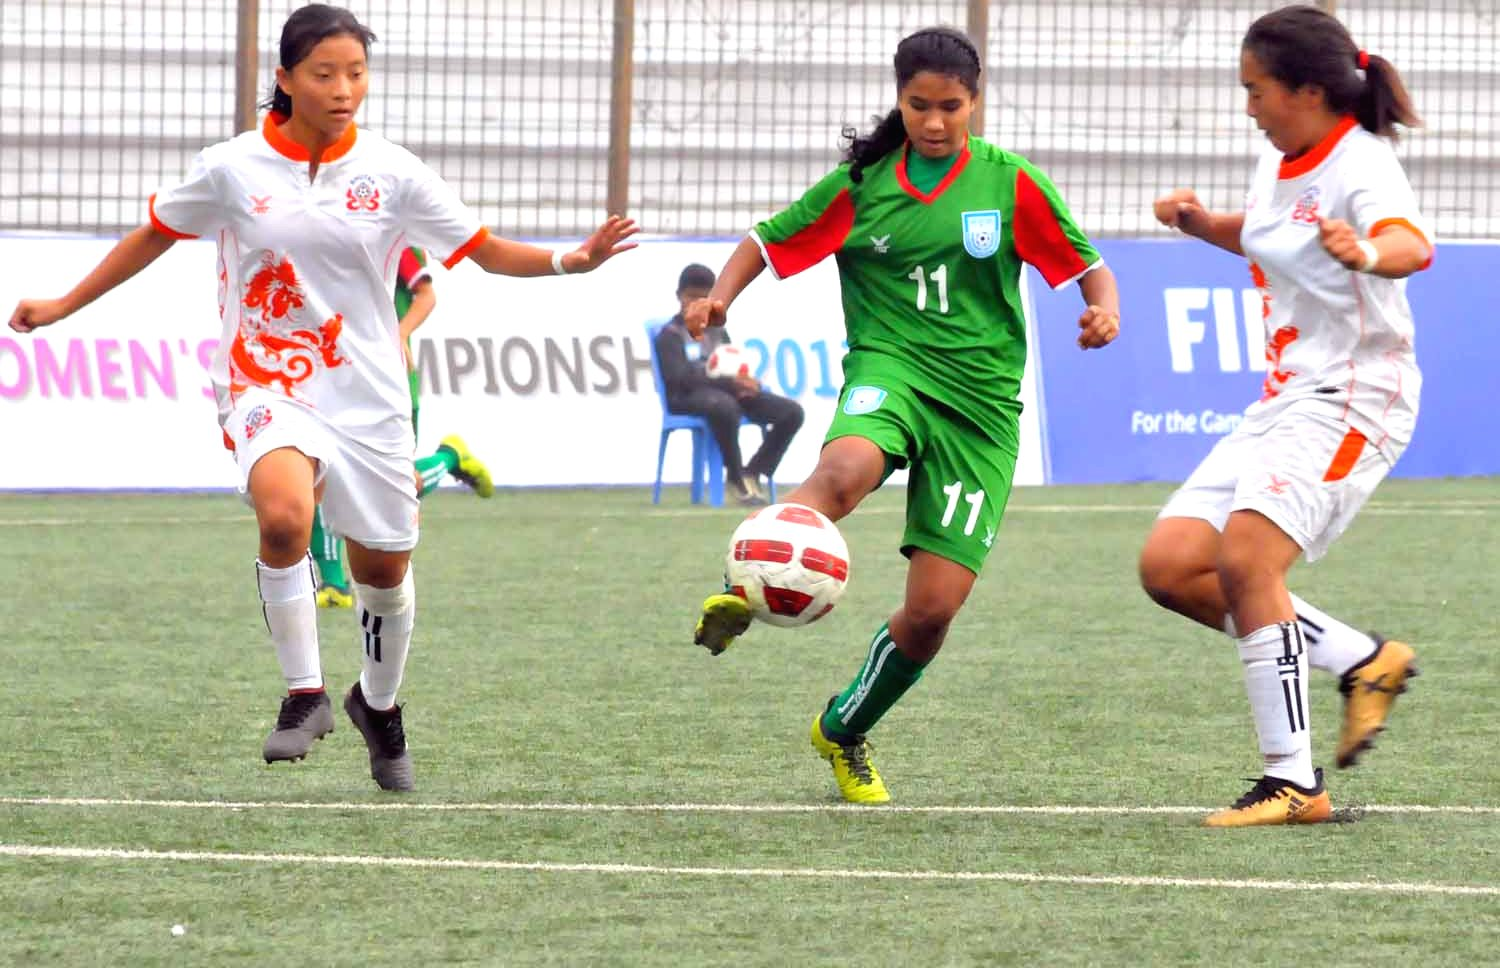 SAFF U-15 Championship: Bangladesh, India girls in final with thumping group stage wins